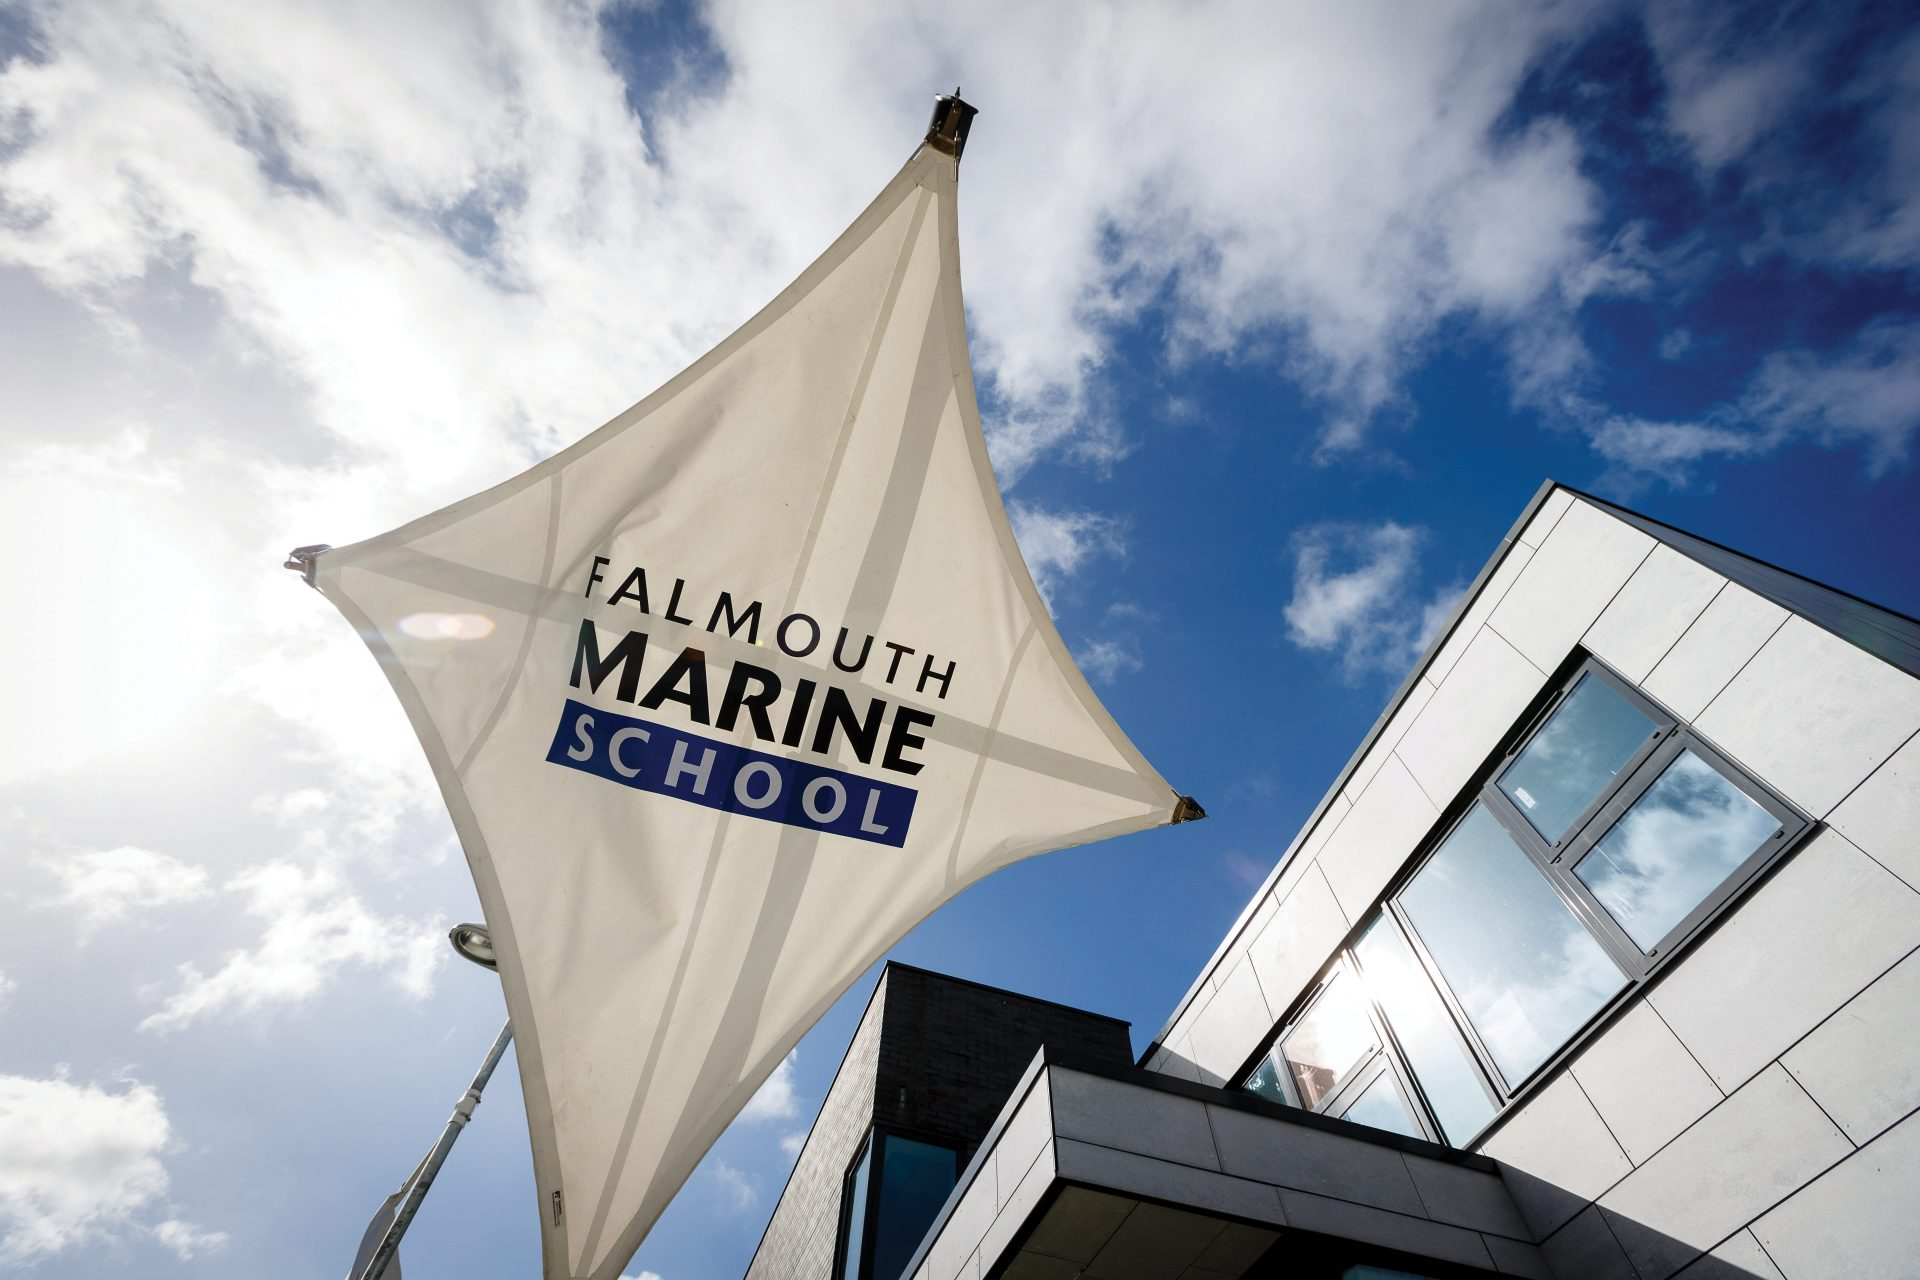 Courses and Careers Advice Event at Falmouth Marine School – February 2021